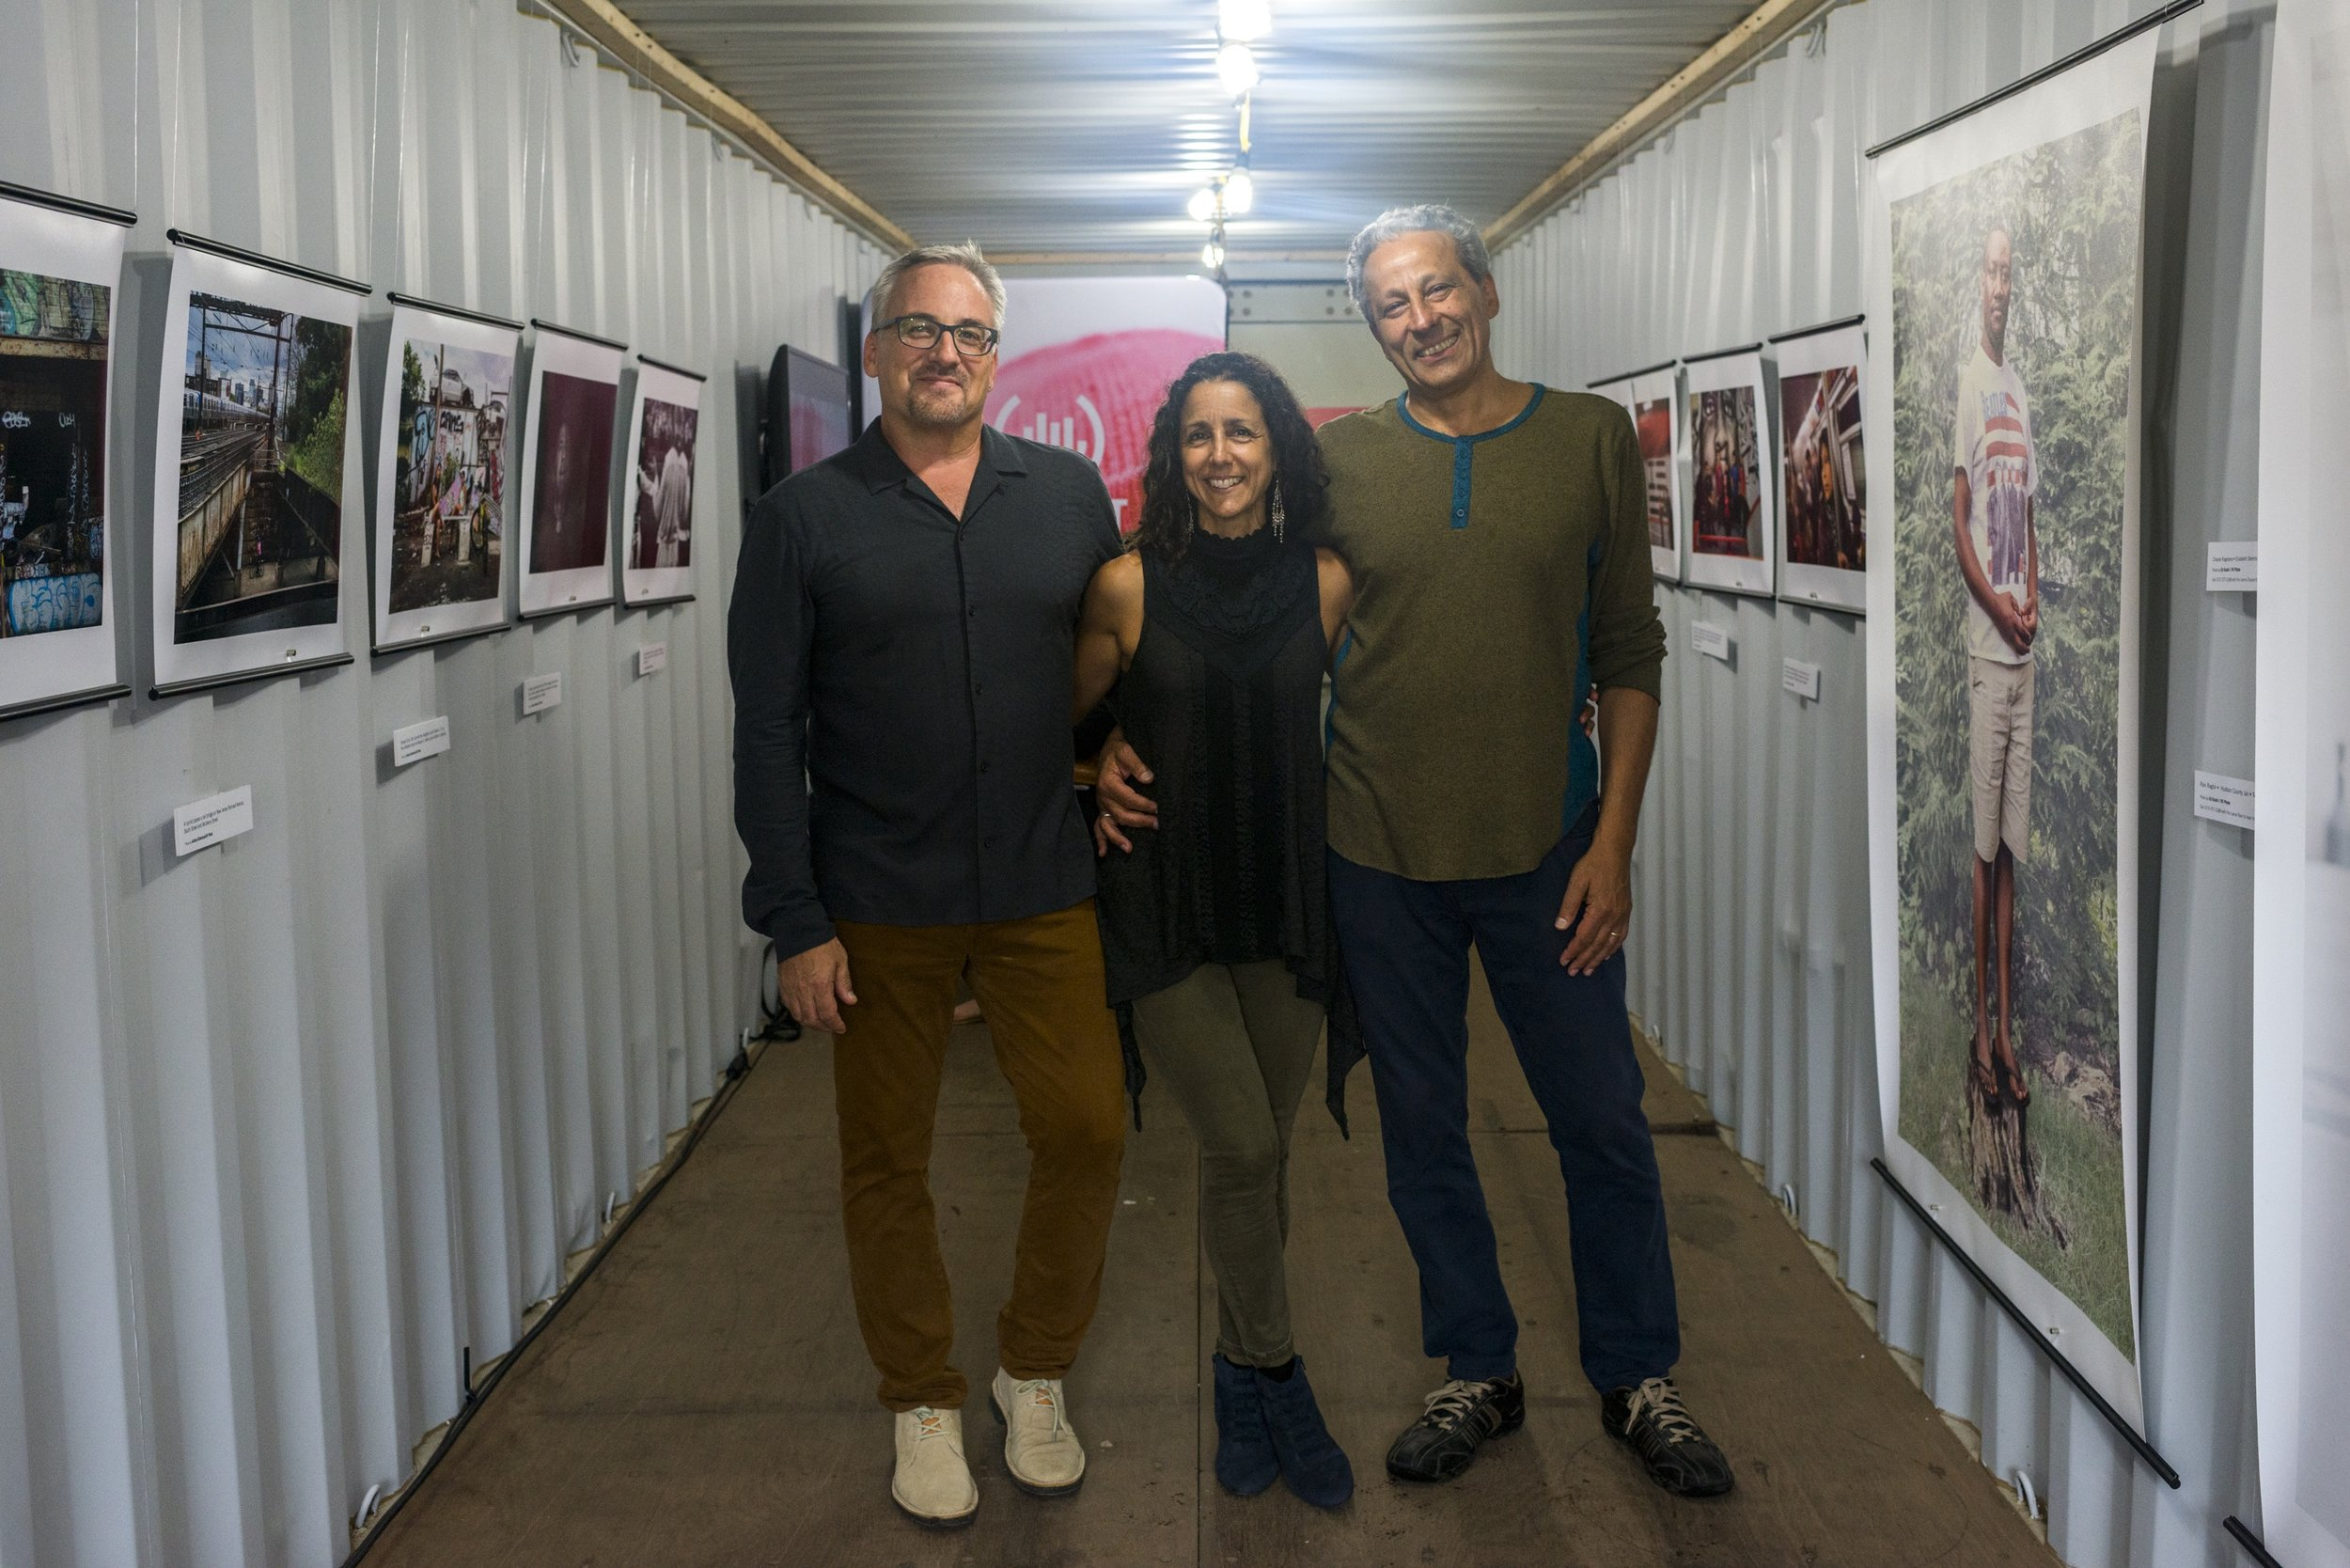 Newest Americans partners Tim Raphael, Julie Winokur, and Ed Kashi smile for the camera in our container exhibit. (Photo by Gareth Smit)